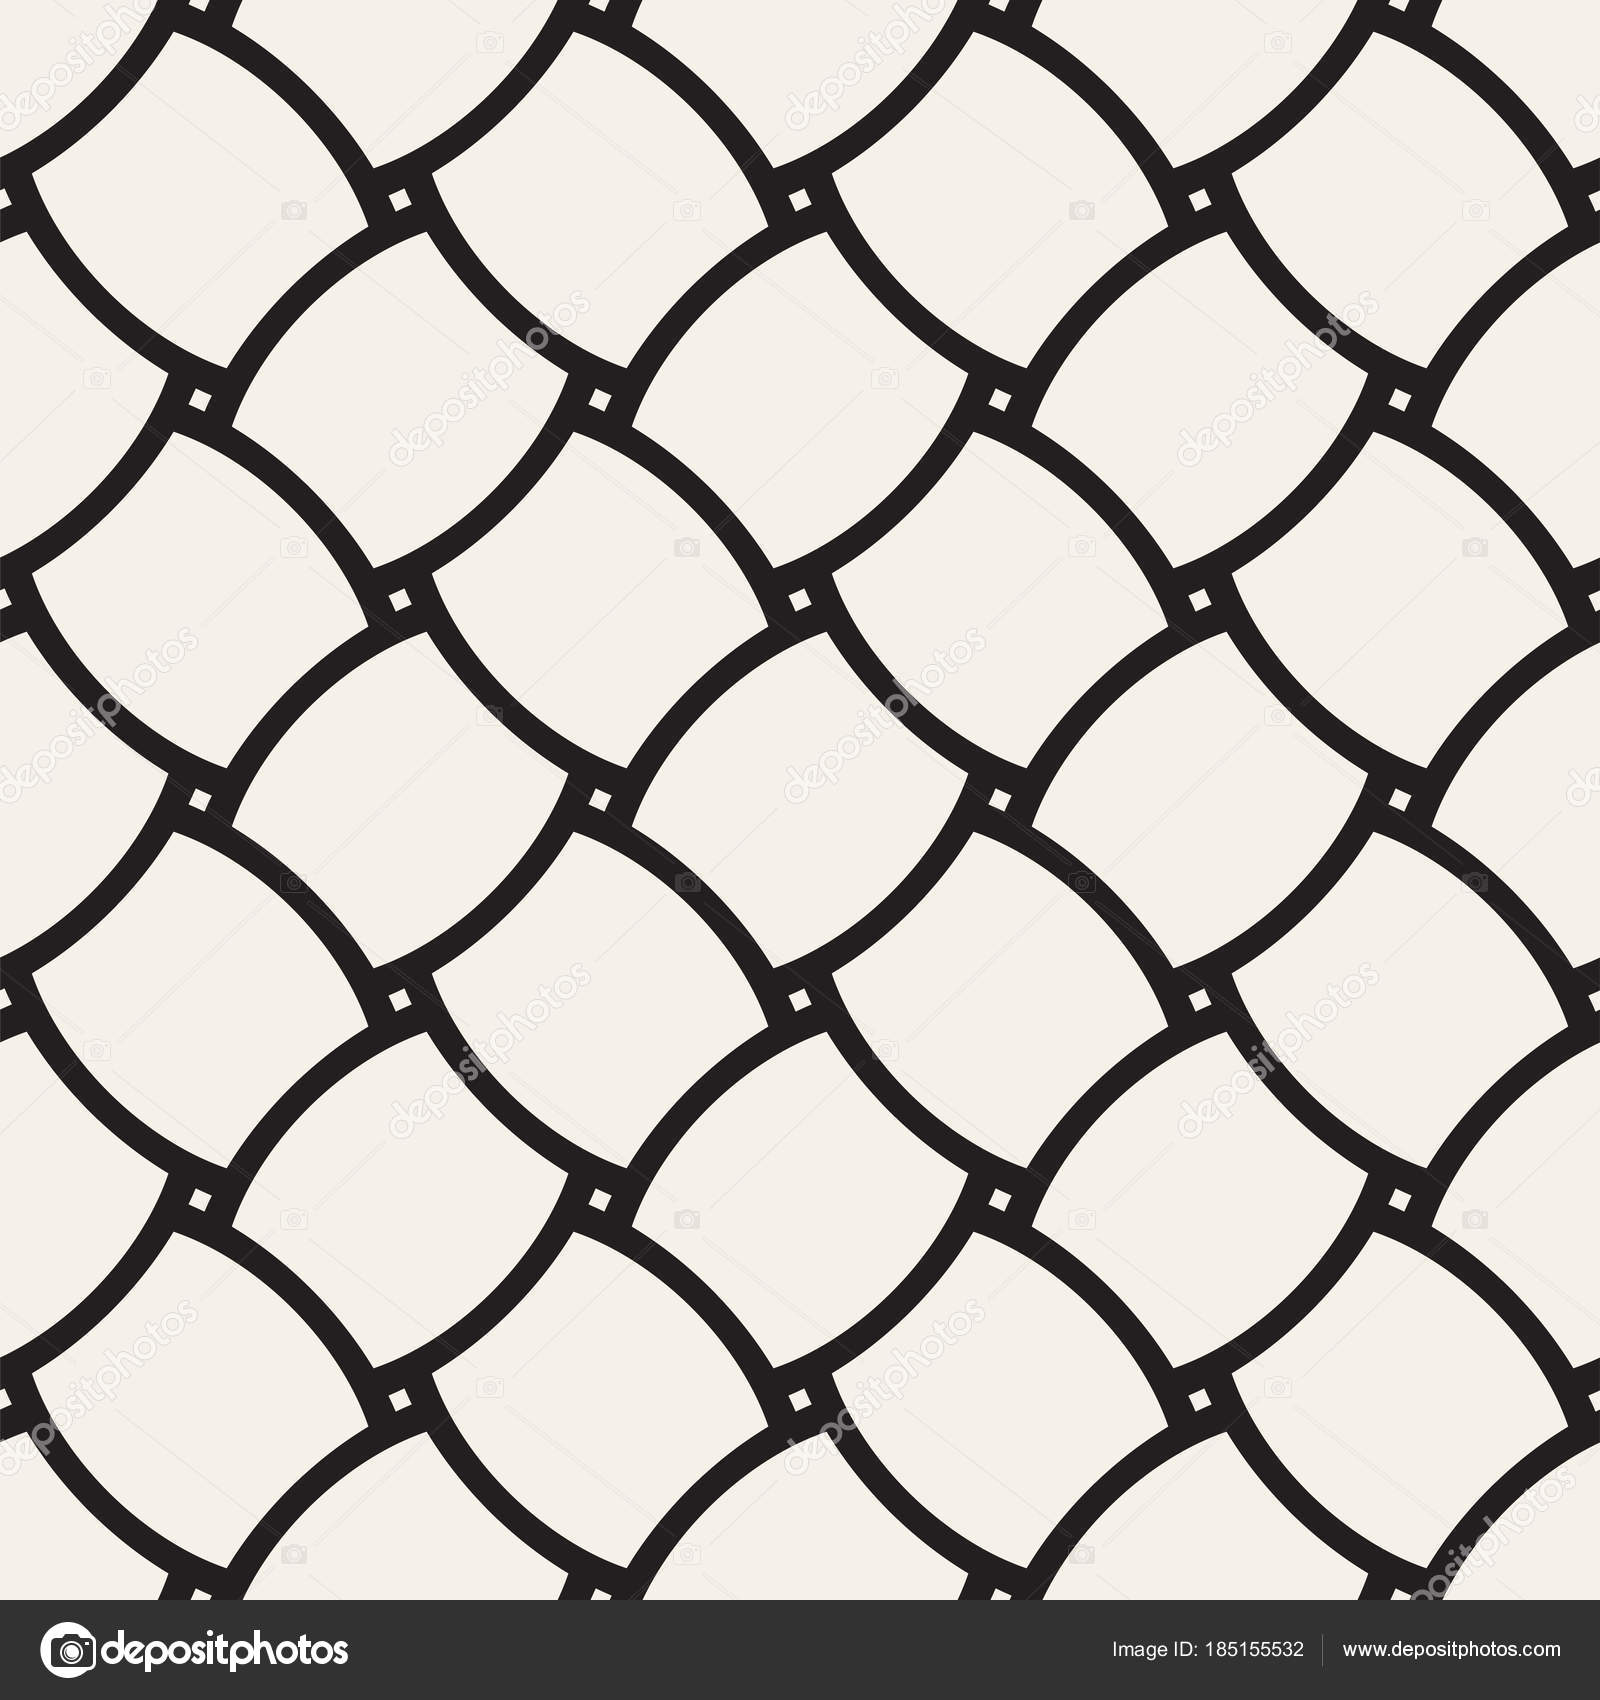 vector geometric seamless pattern with curved shapes grid abstract rh depositphotos com free vector geometric pattern download vector geometric pattern free